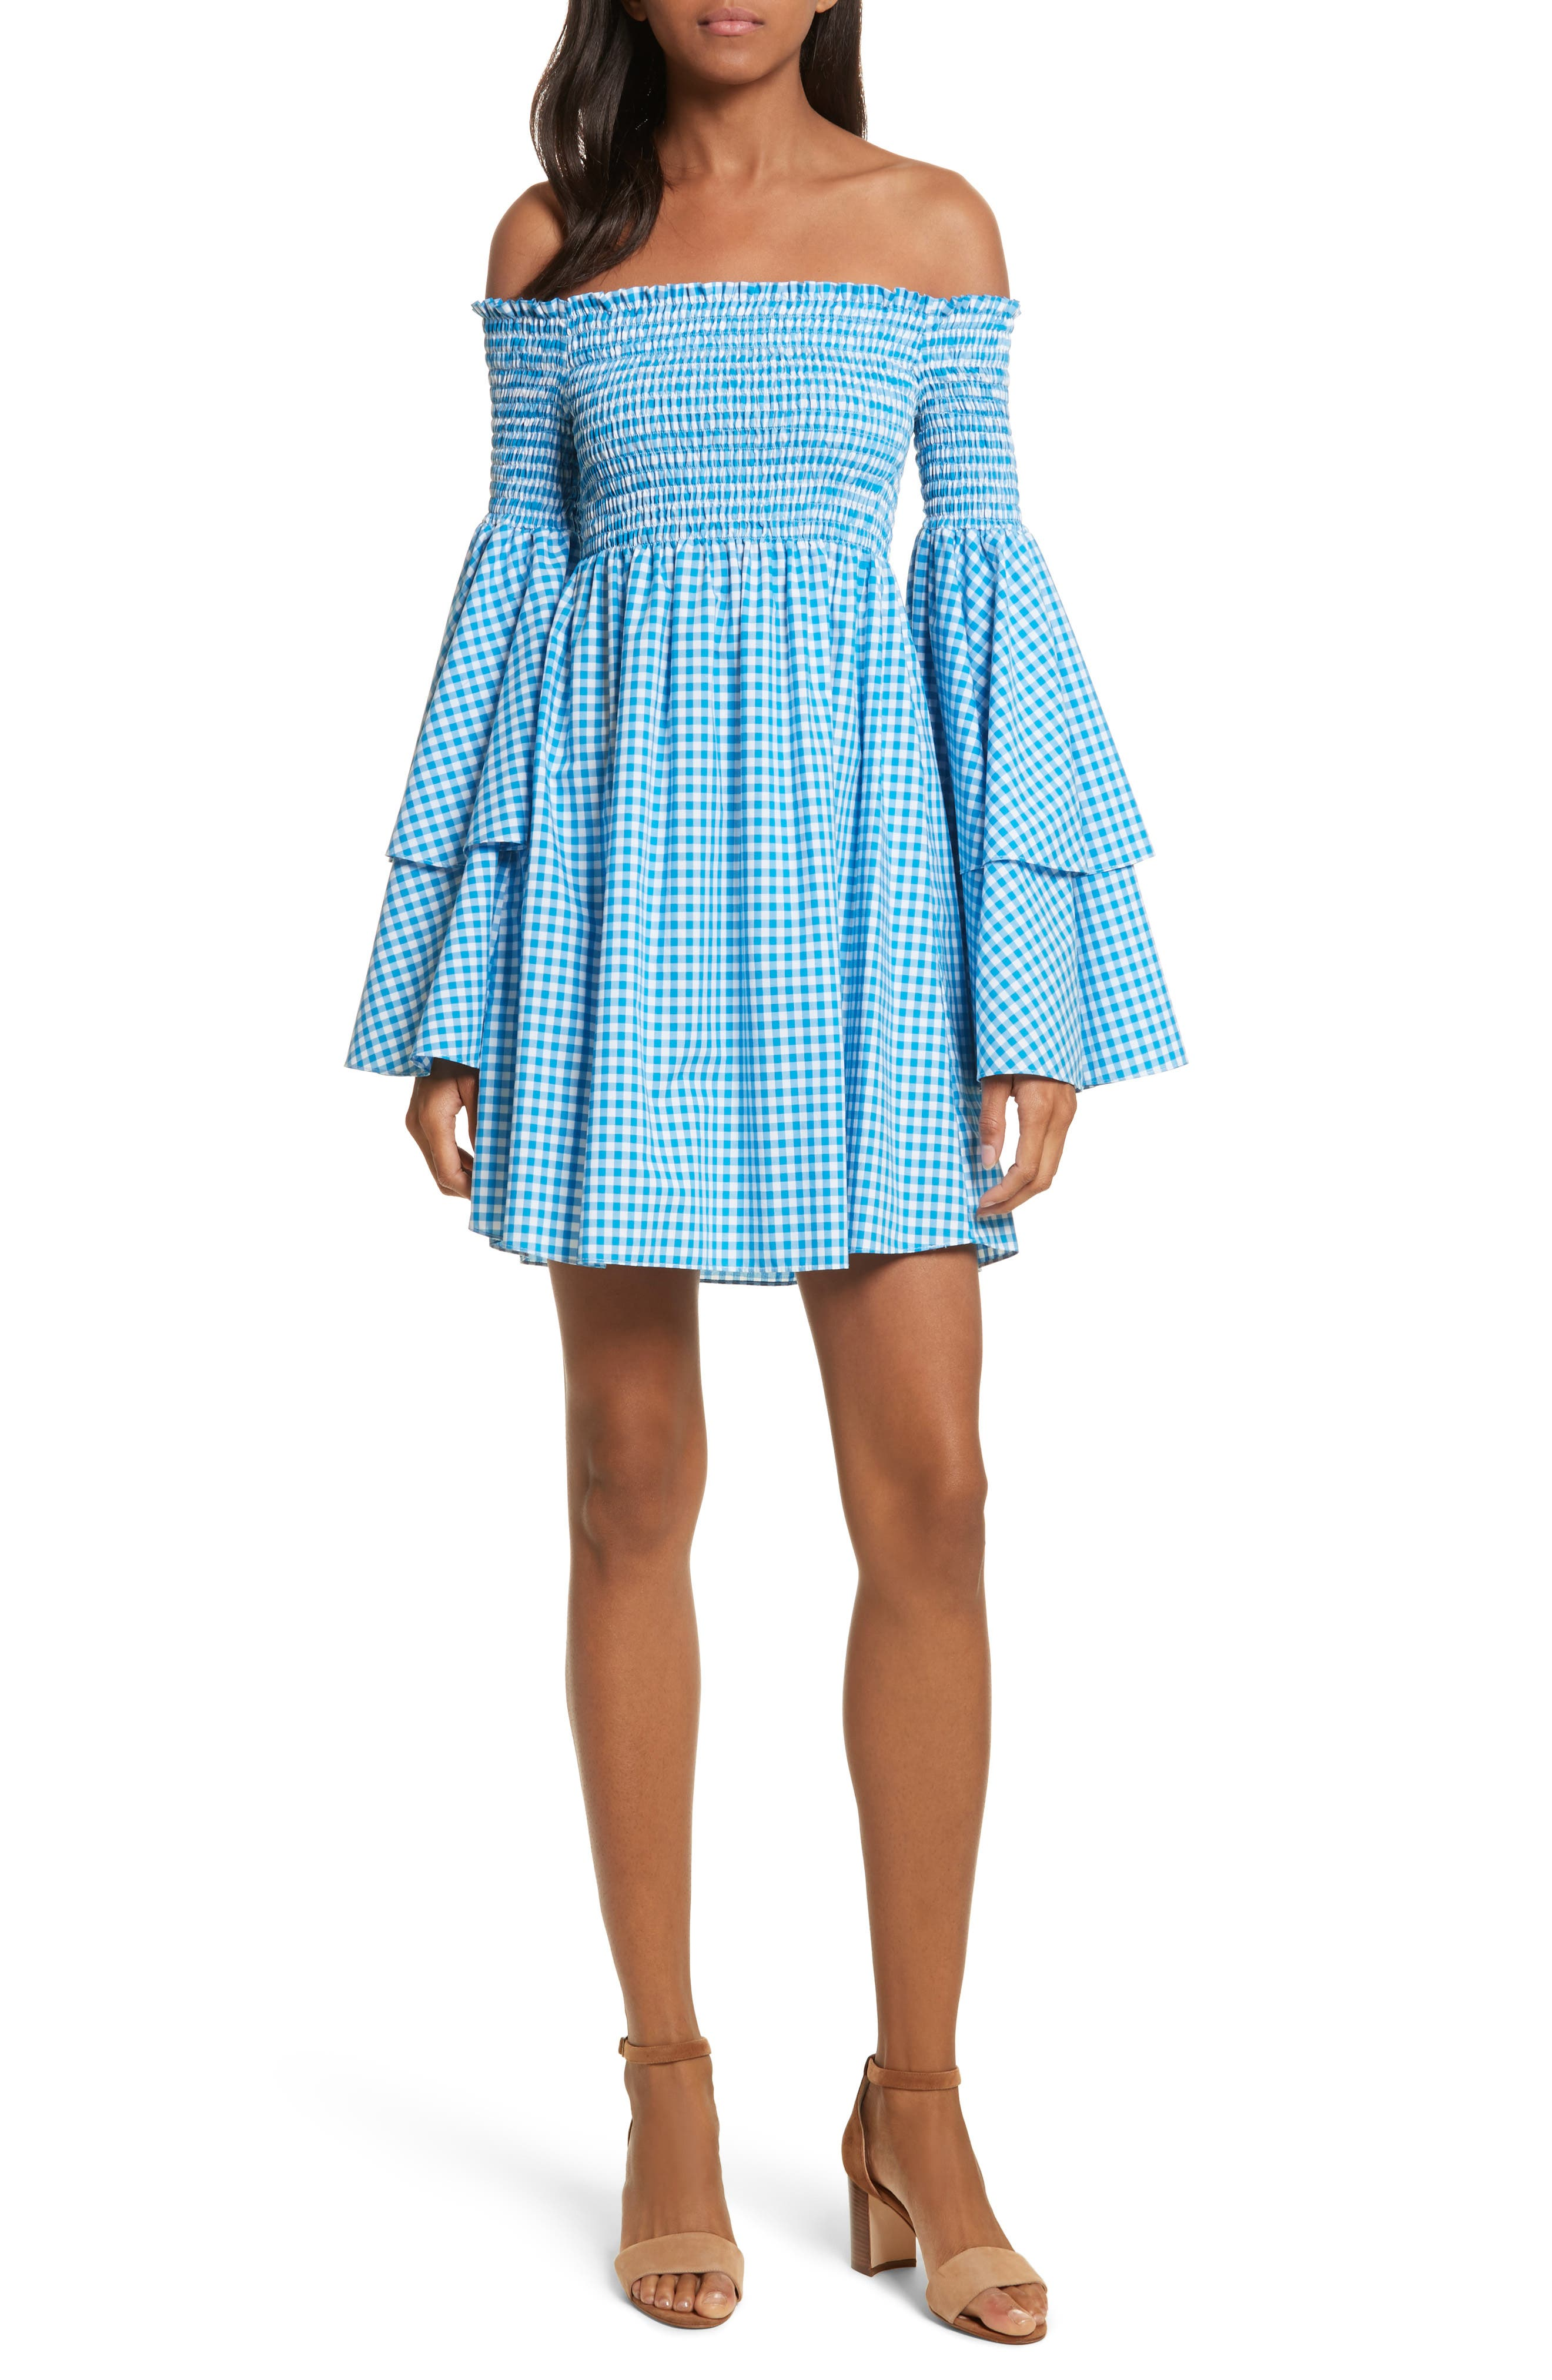 Appolonia Gingham Off the Shoulder Dress,                             Main thumbnail 1, color,                             Turquoise